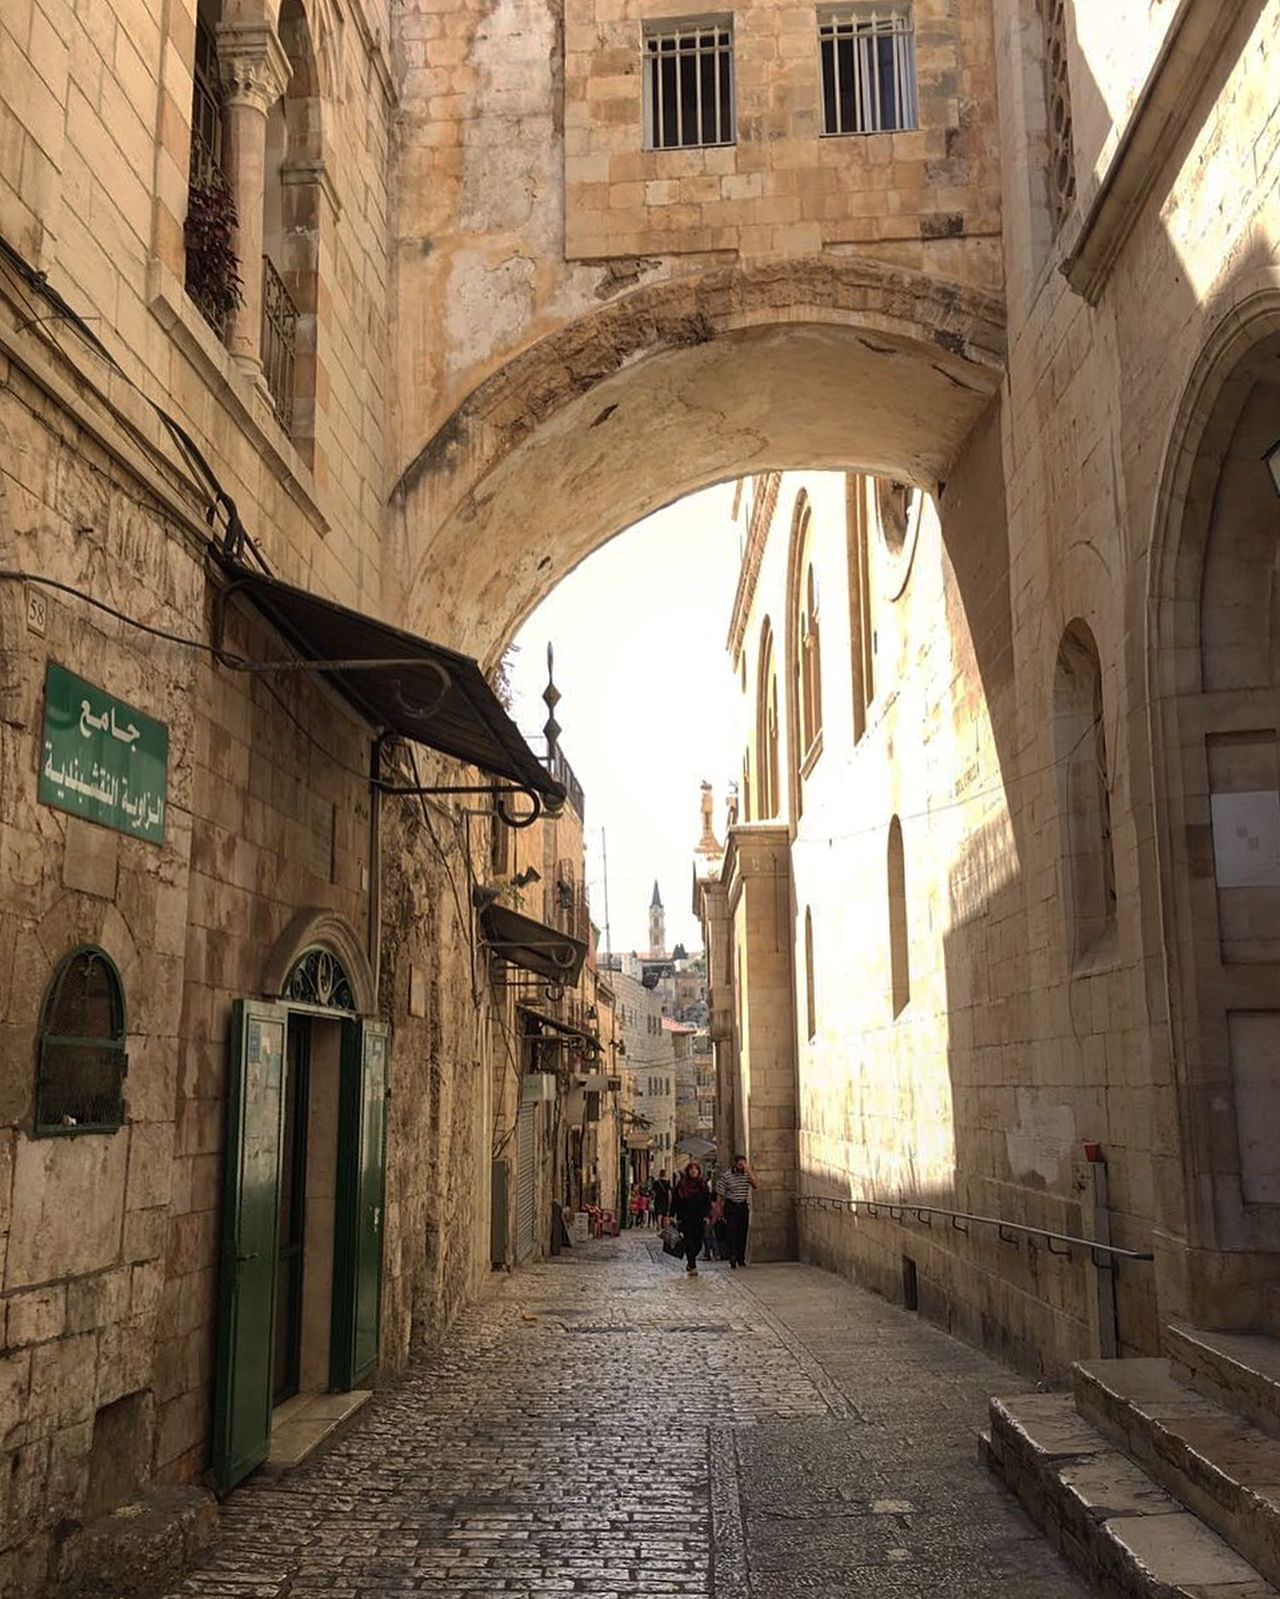 Empty beautiful and ancient streets of Jerusalem, Israel Ancient Architecture Beautiful Bricks Brickstones Building Exterior Built Structure Doors Holy City Israel Jerusalem Light Outdoors Religions Shadow Sun The Way Forward Tourist Destination Travel Destination Walls Windows